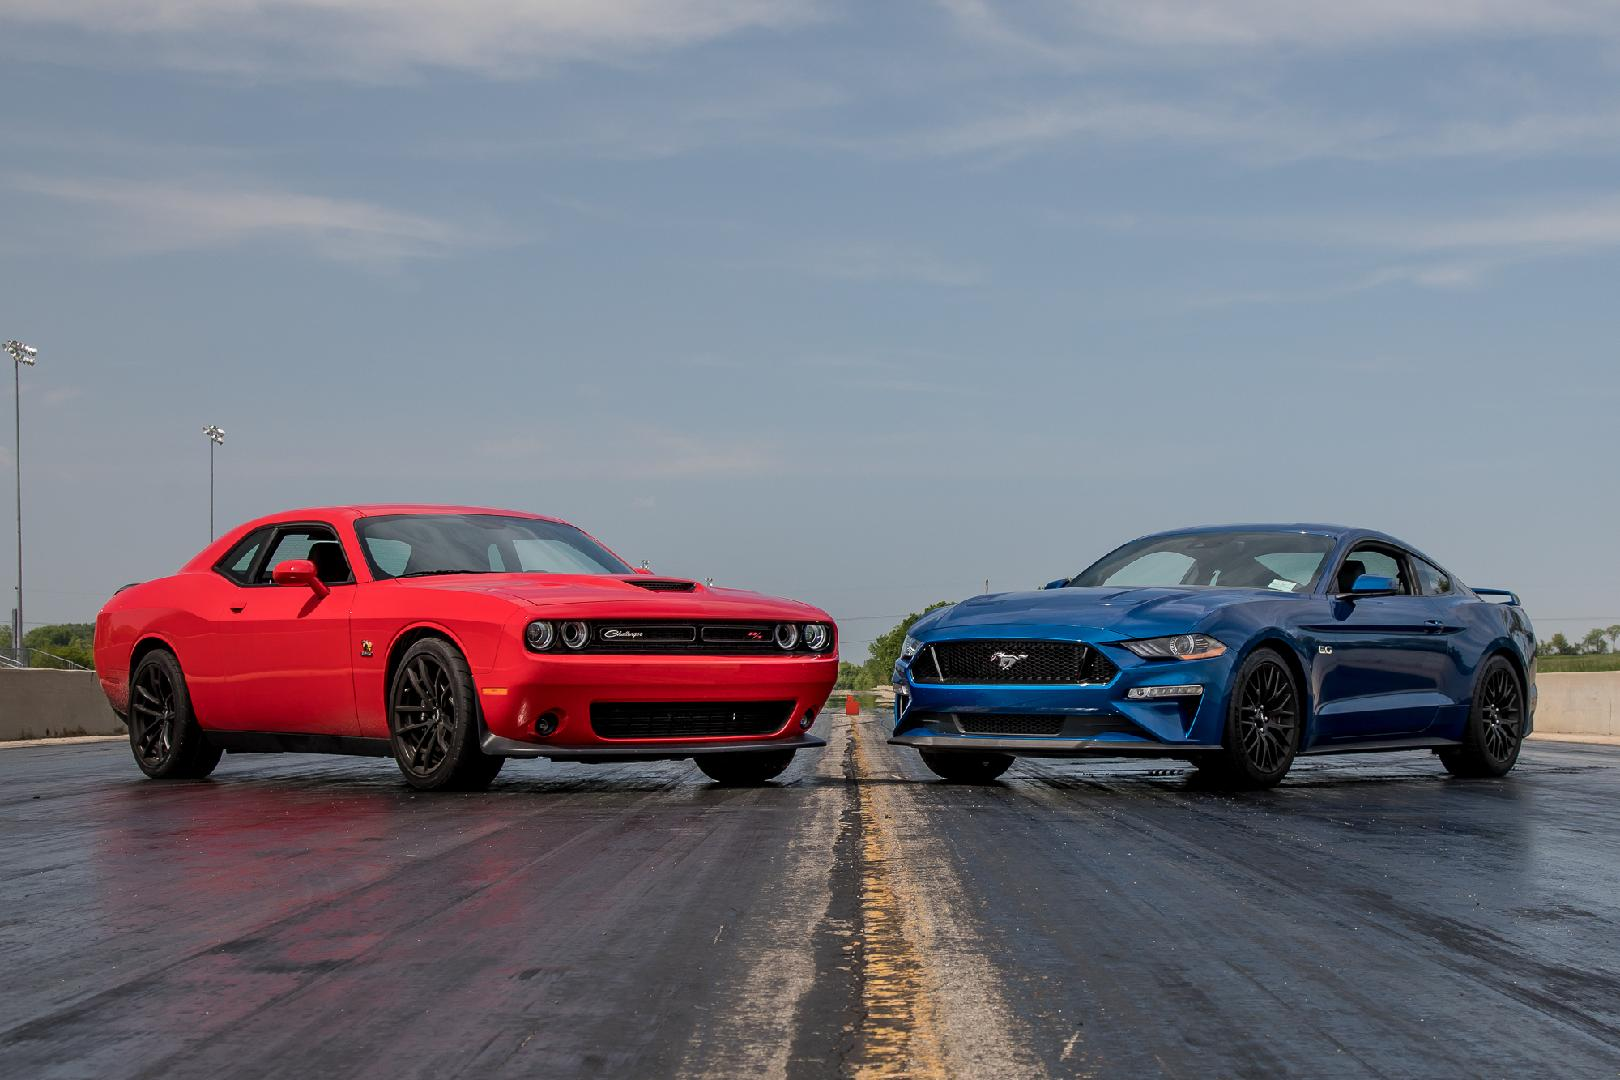 Video: Dodge Challenger R/T Scat Pack 1320 Vs. Ford Mustang GT — Cars.com